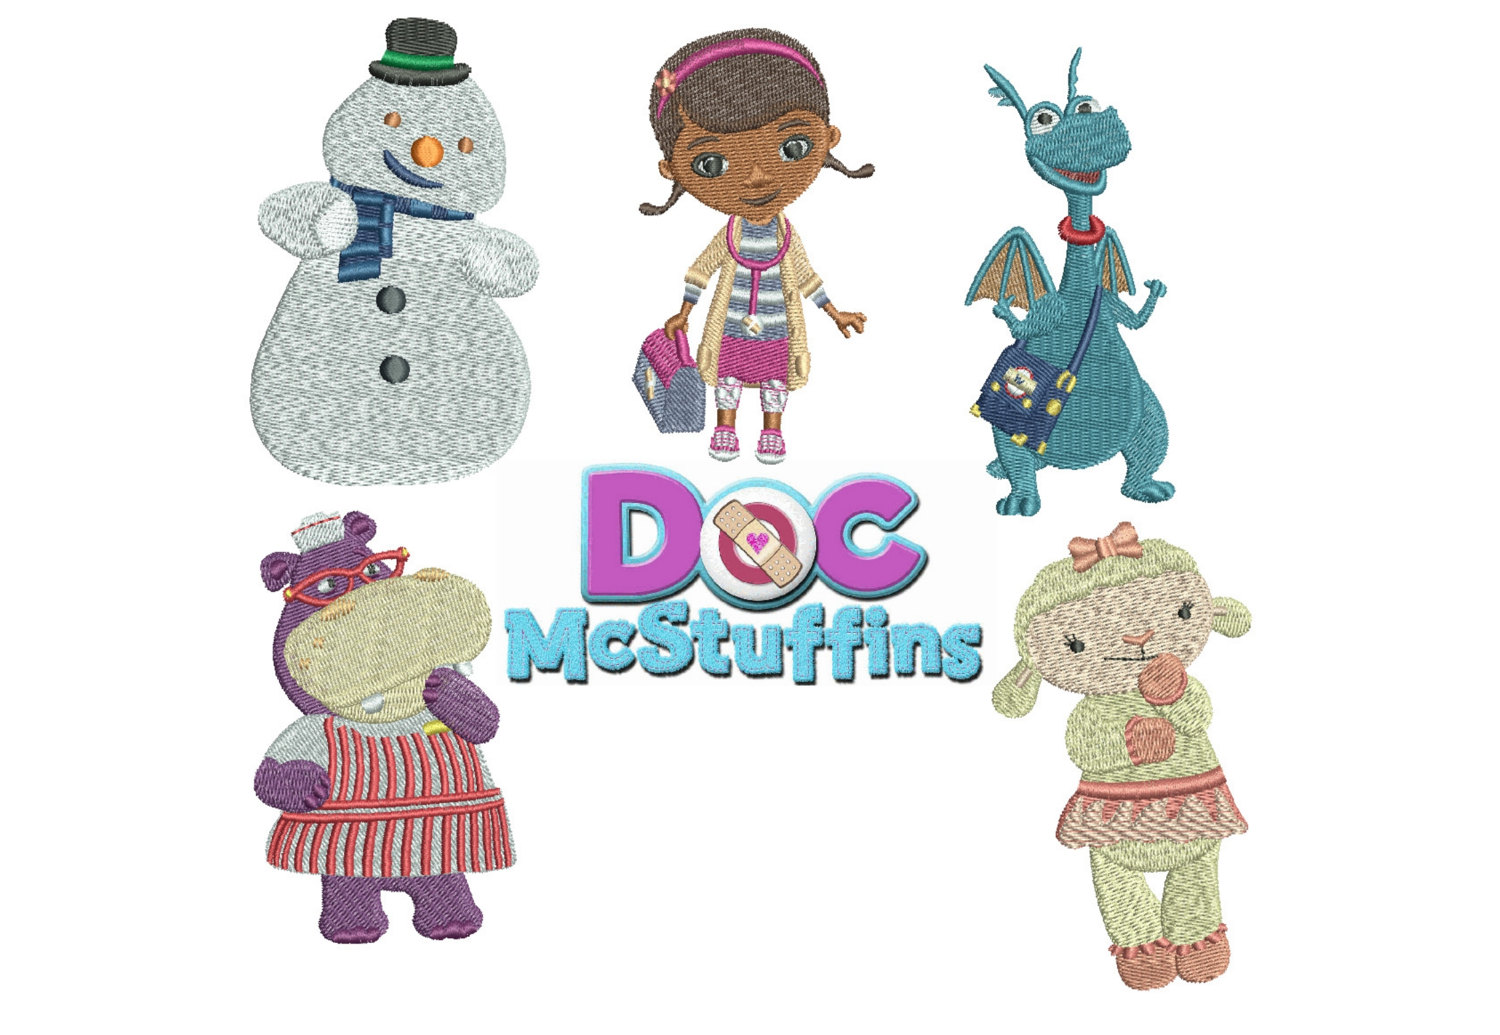 75% off on Doc McStuffin Embroidery Designs - 4 x 4in hoop machine embroidery designs - resizable files with a freely downloadable software.